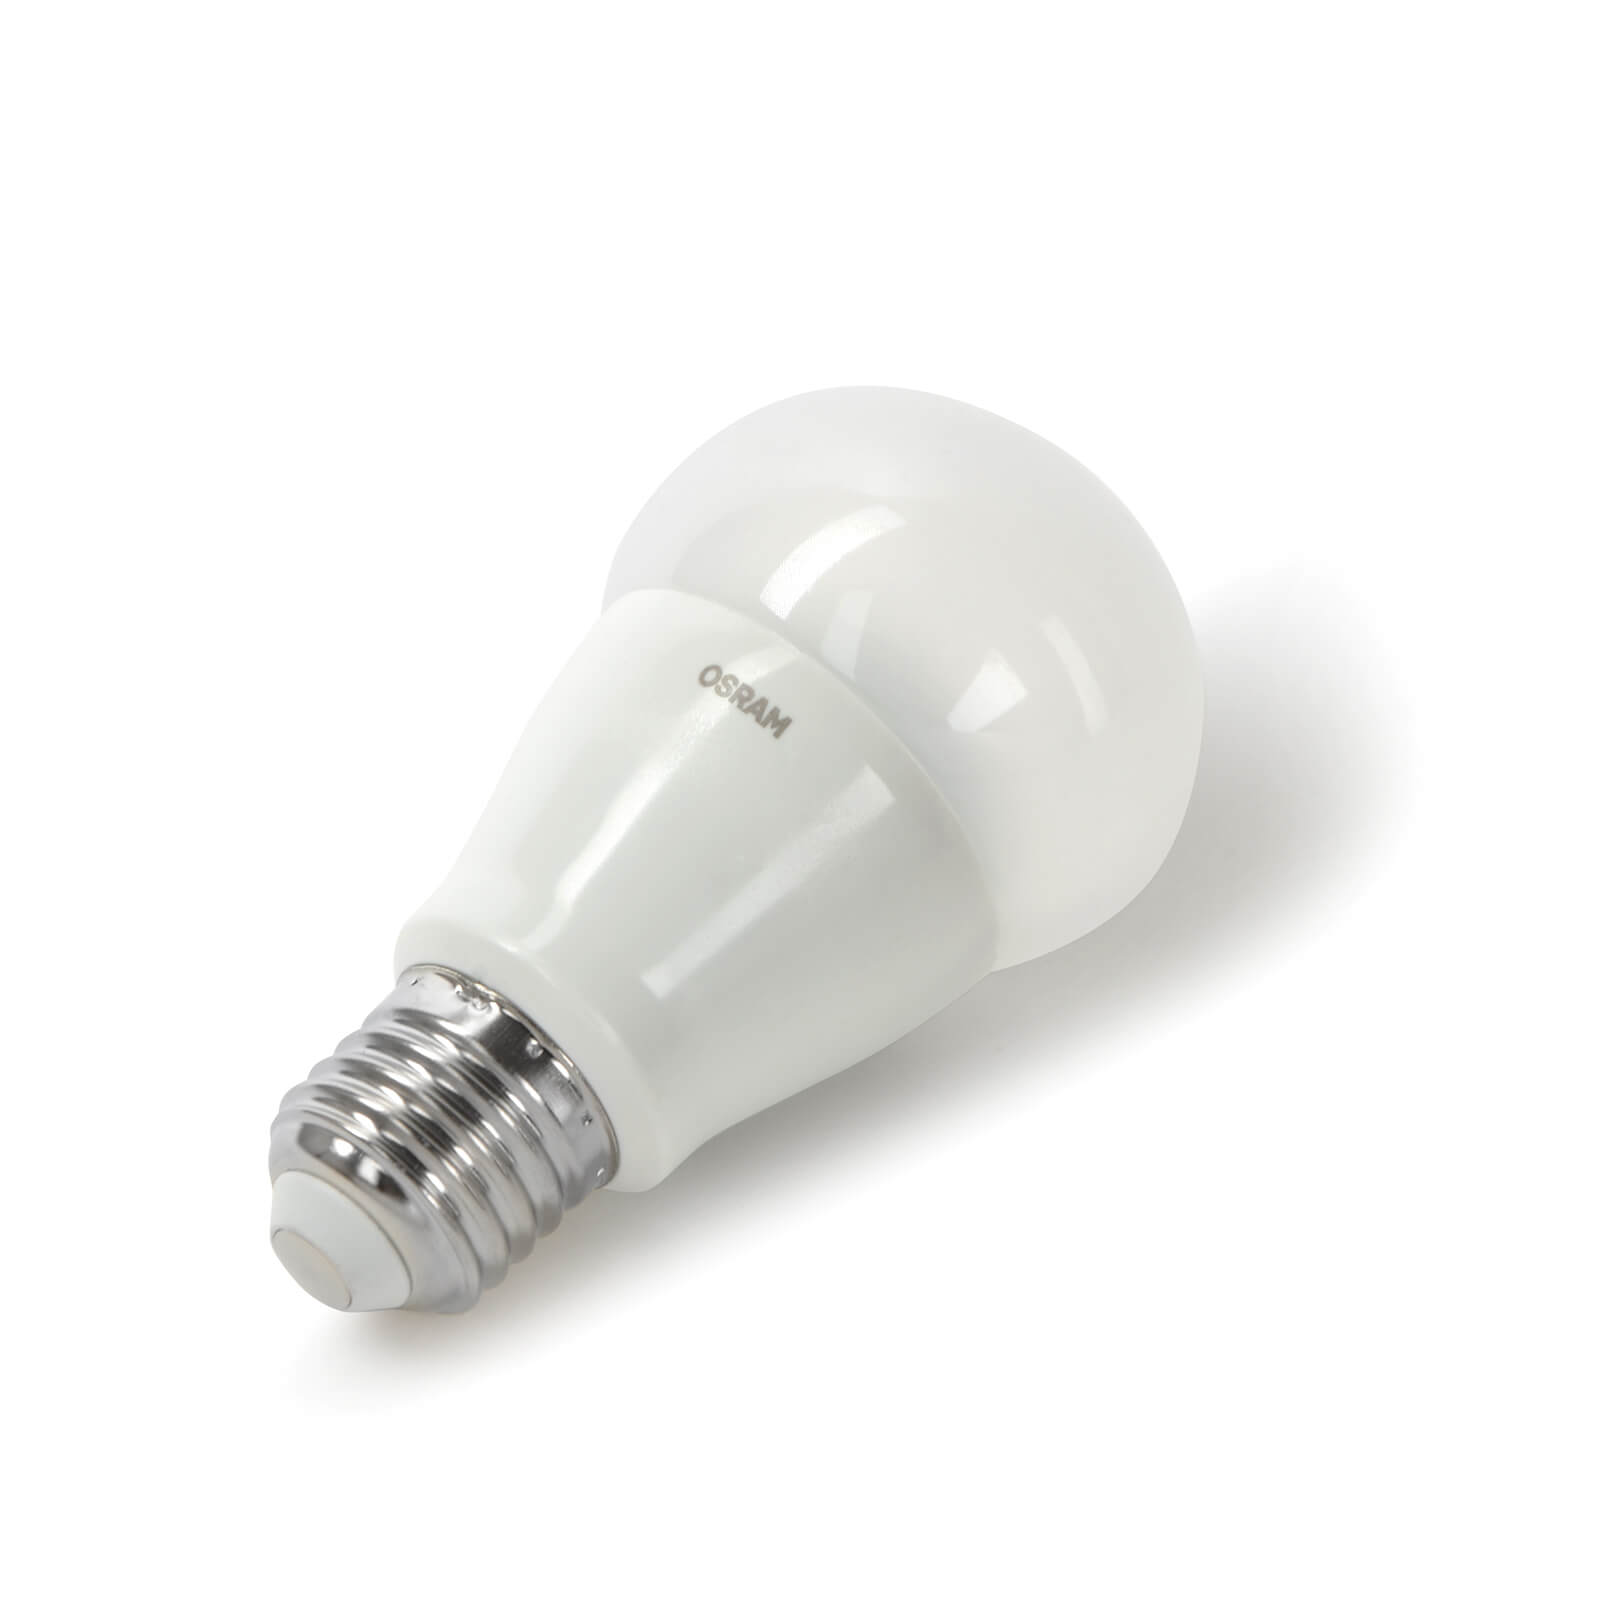 Osram lamps: types, characteristics, purpose and reviews 33